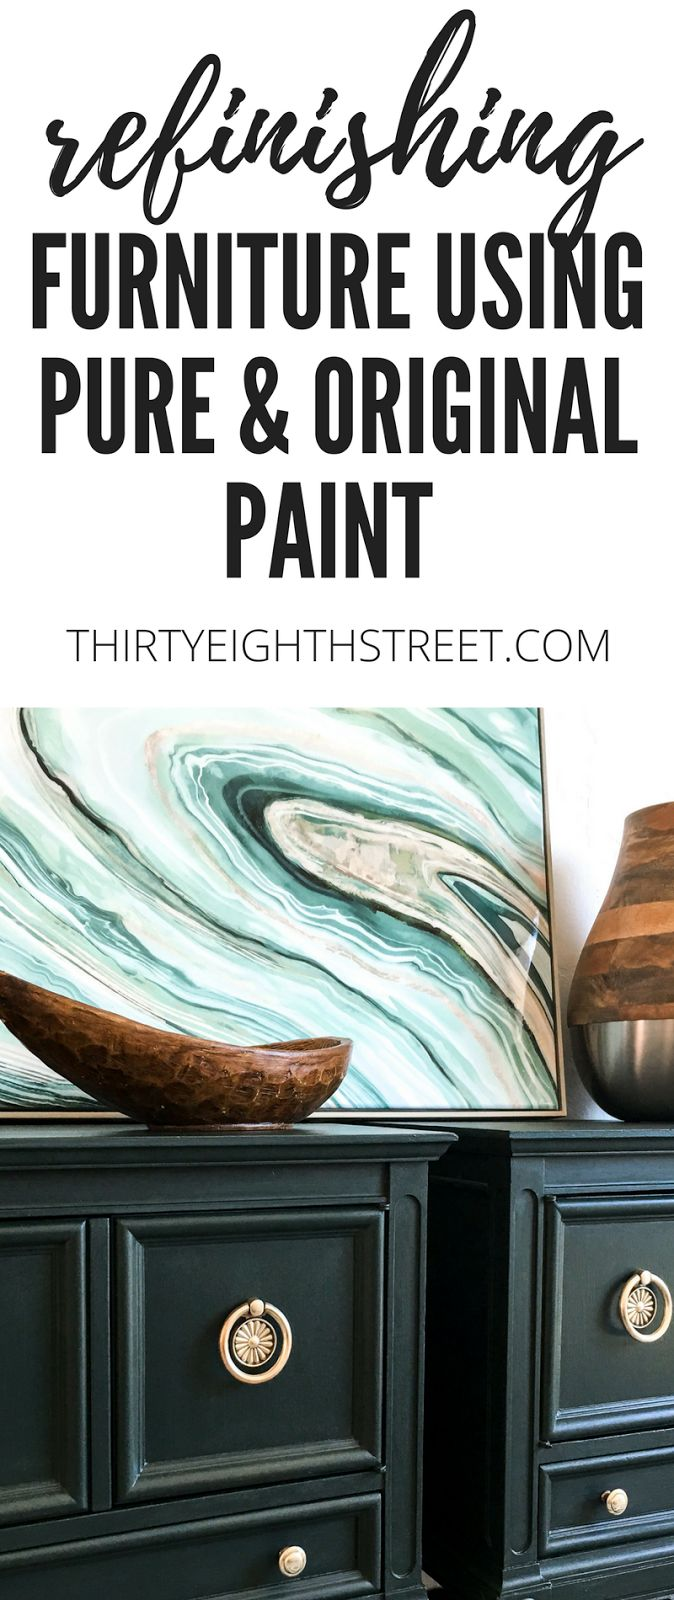 Painting Furniture With Pure & Original Paint. So many pretty paint colors to choose from! | Thirty Eighth Street